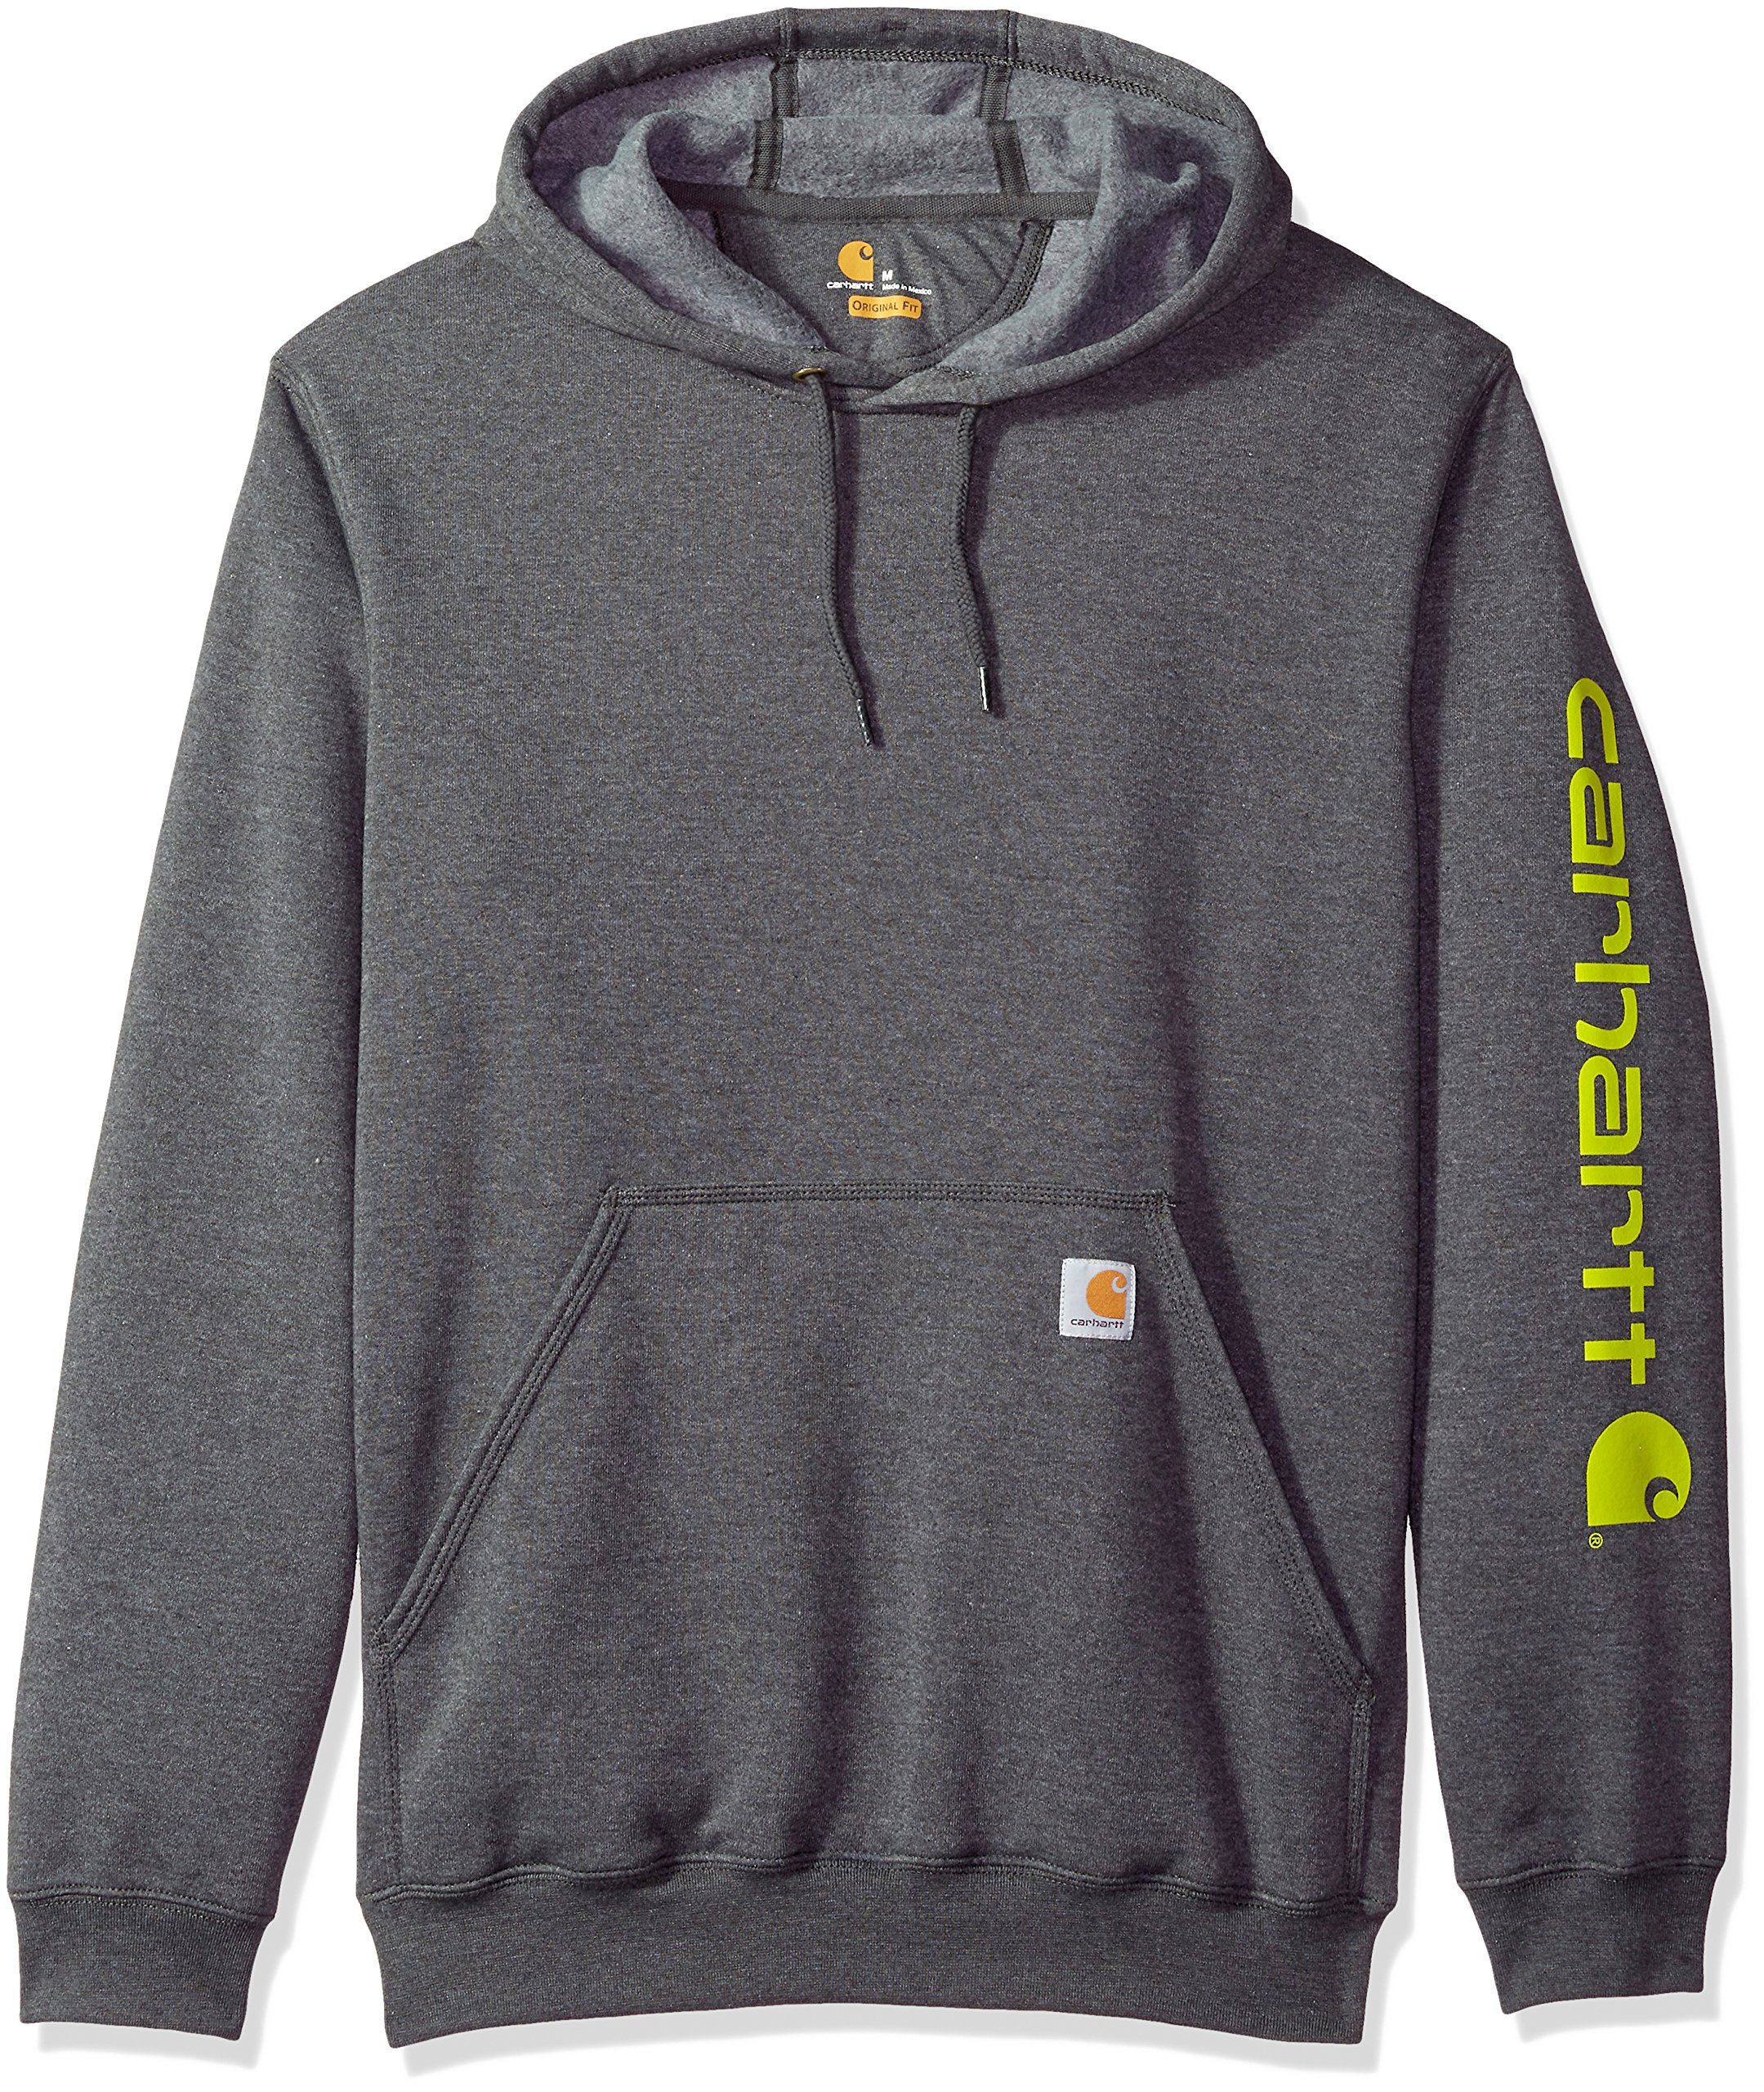 Carhartt Men's B&T Signature Sleeve Logo Midweight Hooded Sweatshirt K288, Carbon Heather, 2X-Large